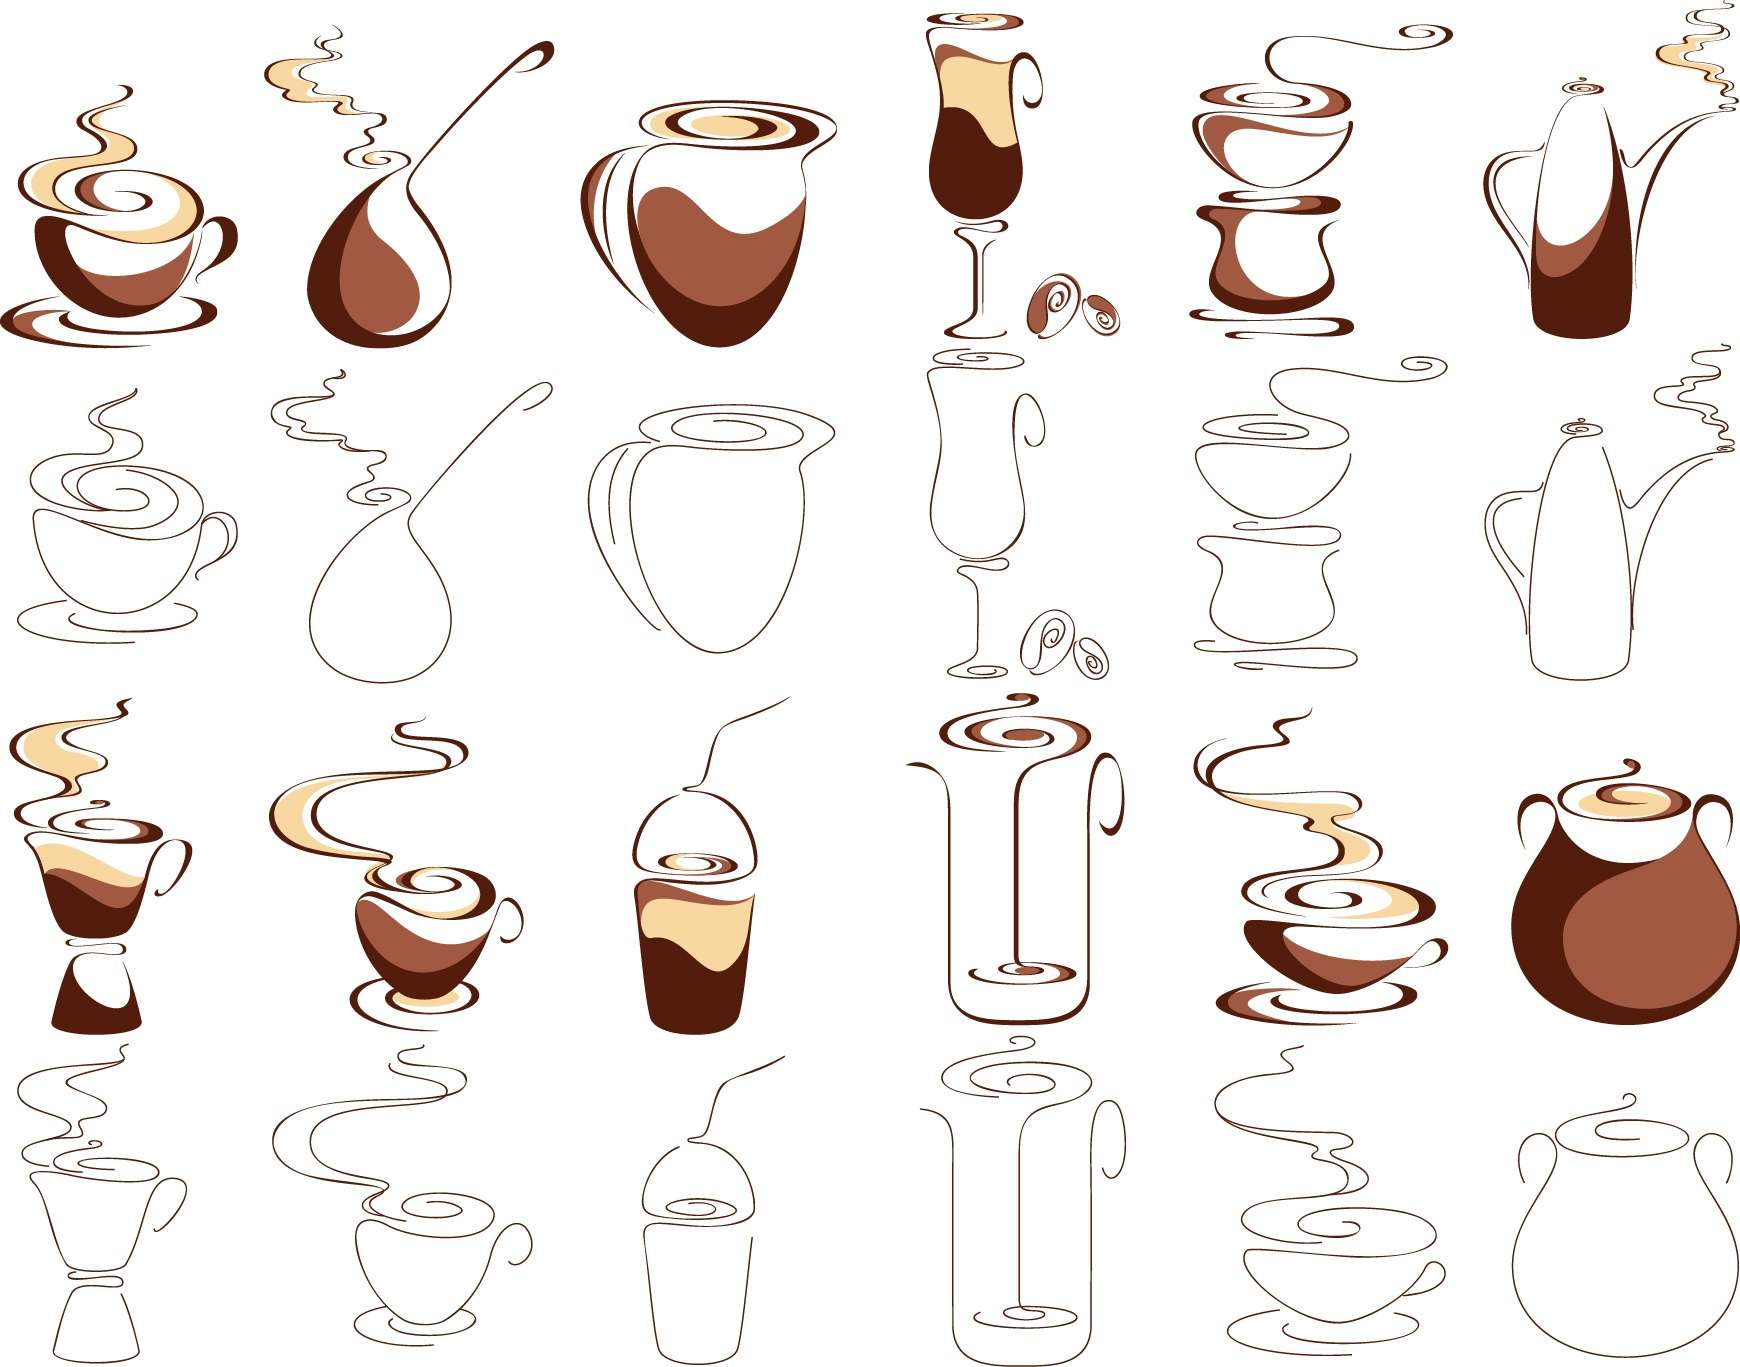 Coffee graphic